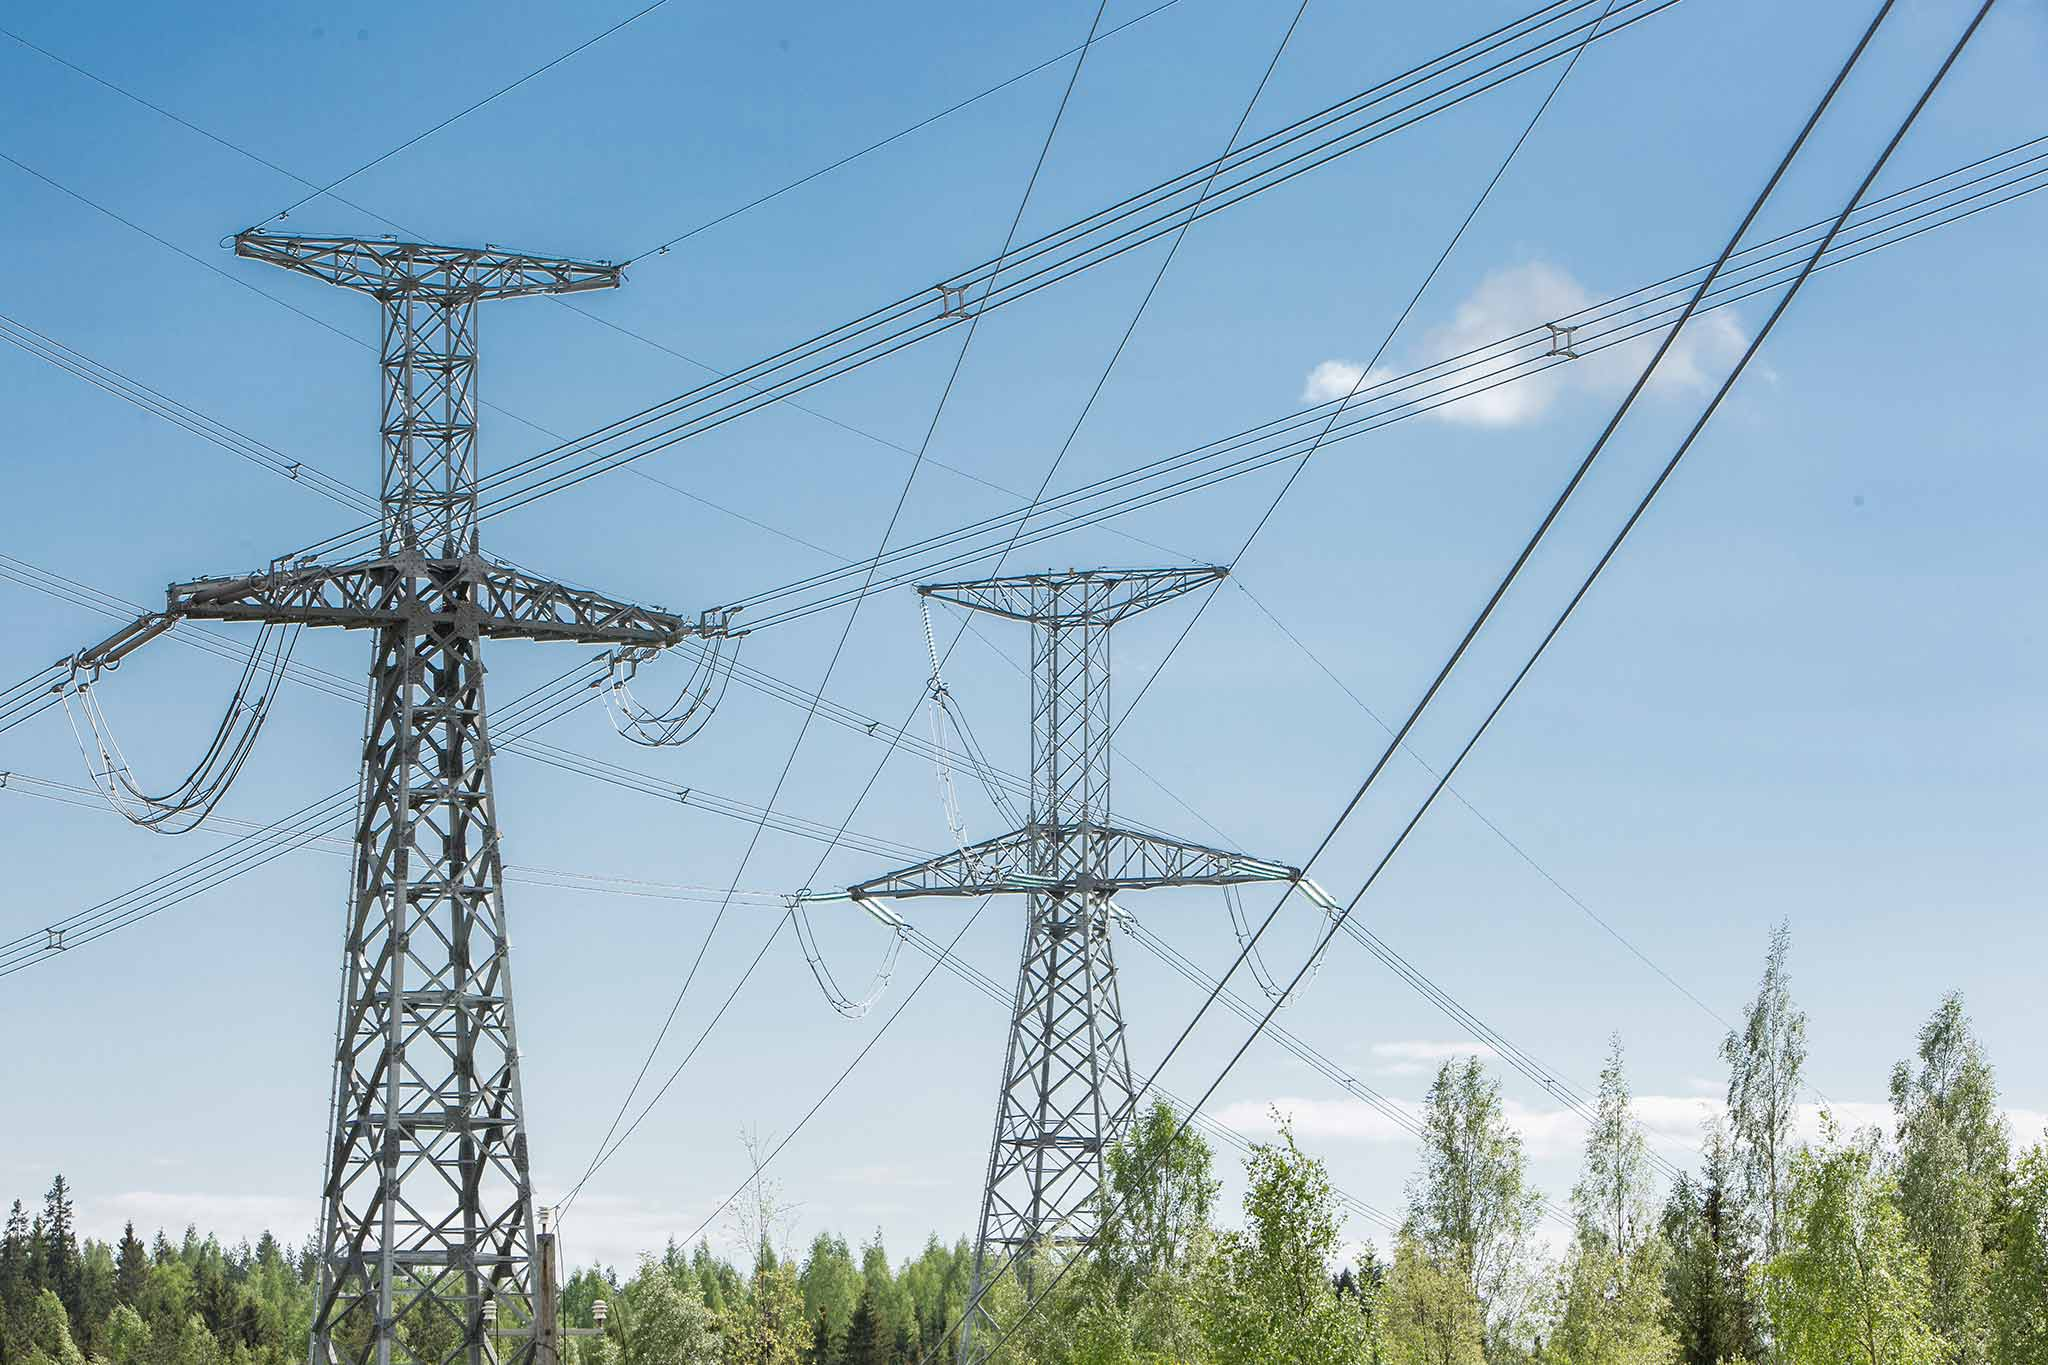 Main grid service fees remain unchanged